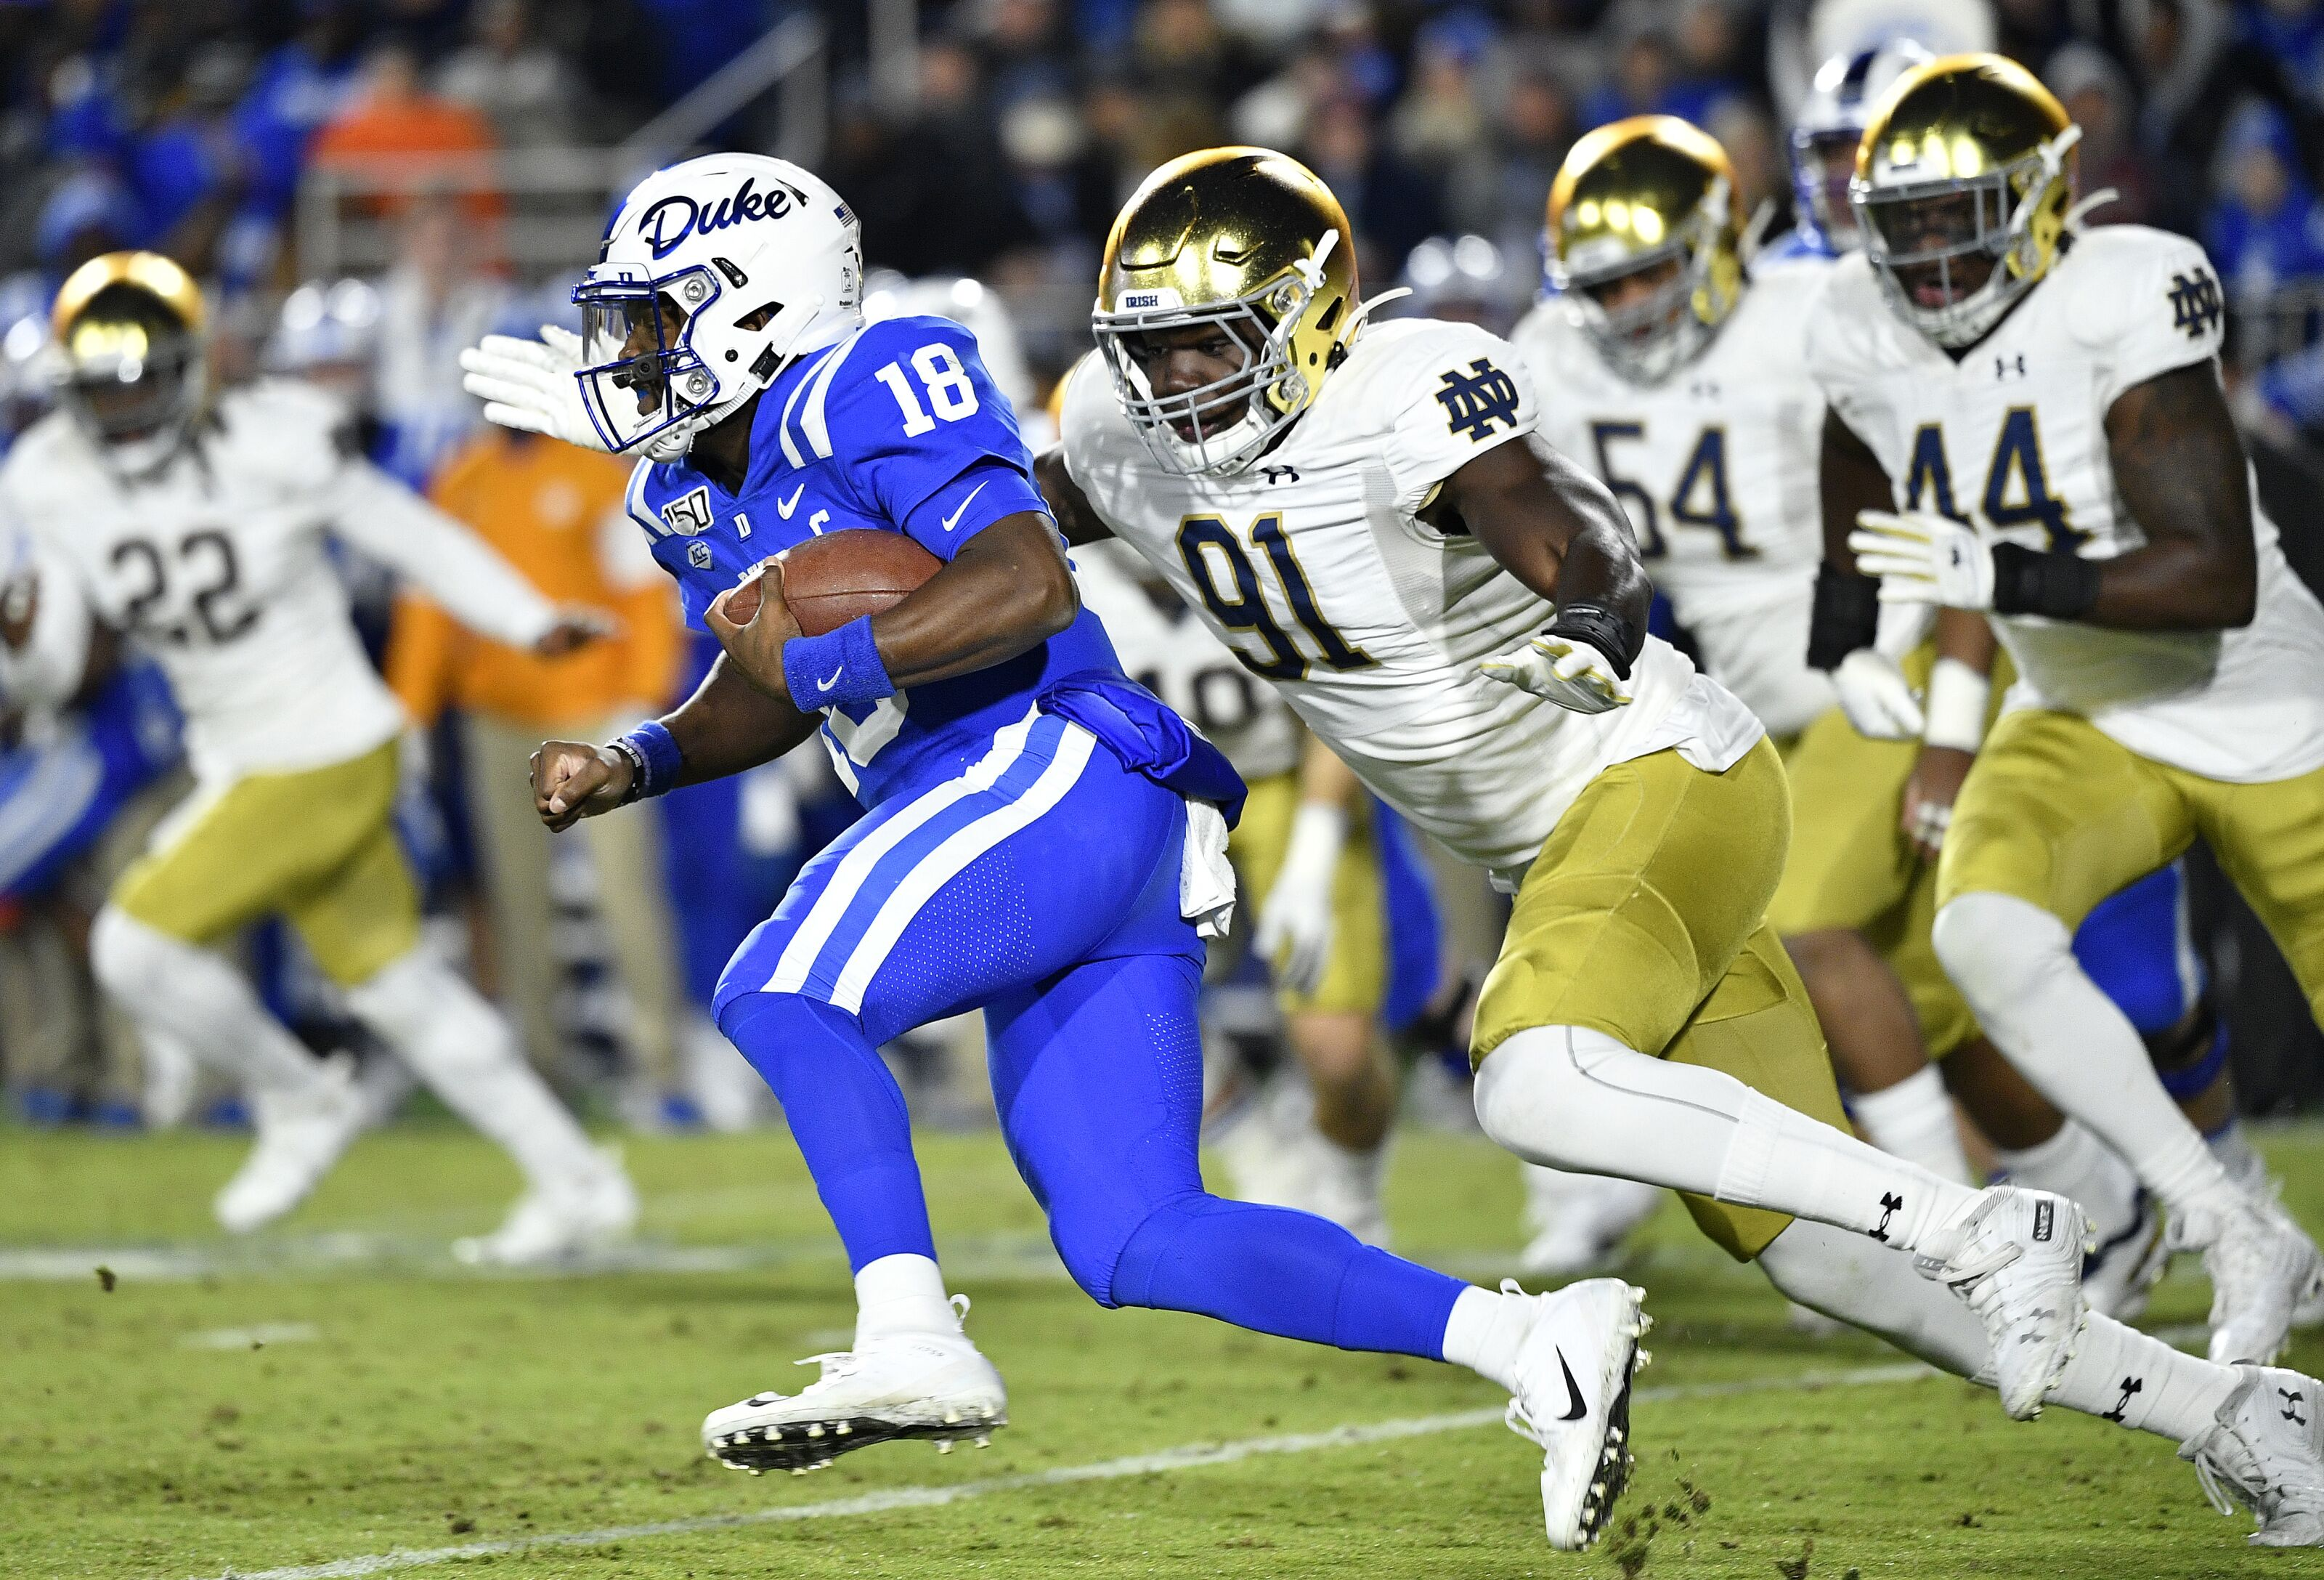 Duke Football on outside looking in of latest ESPN bowl projections